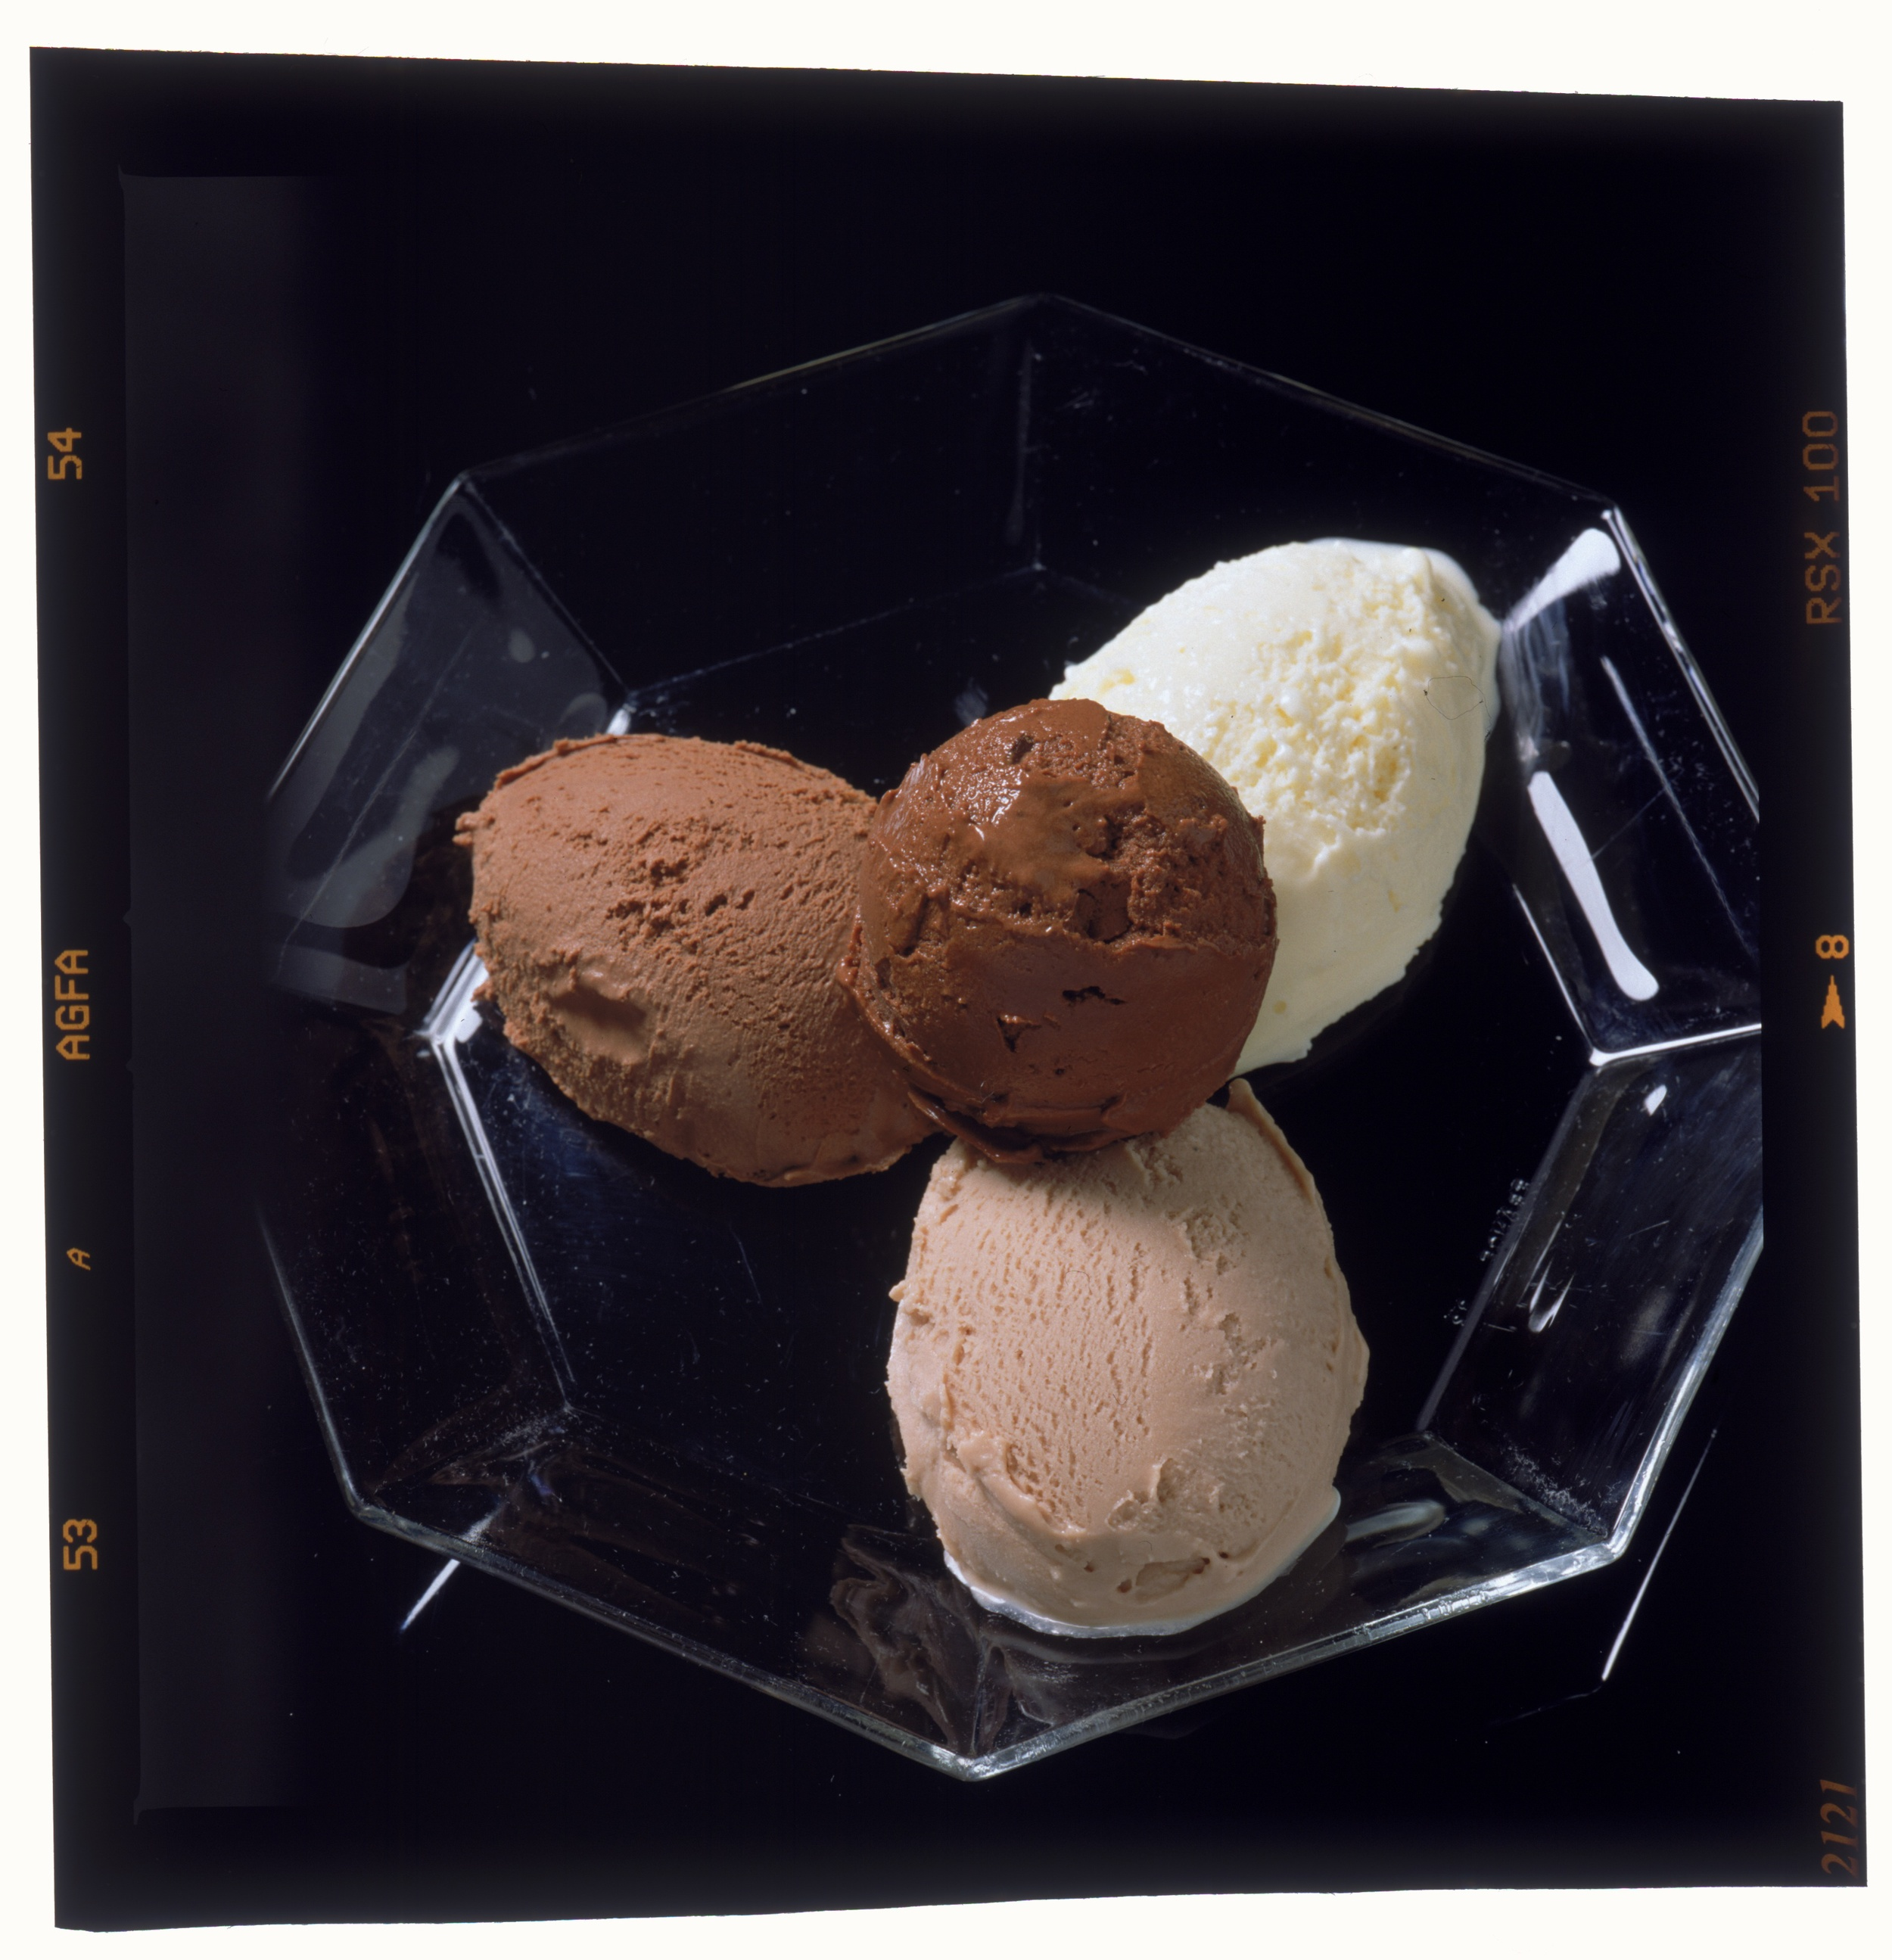 Lindt Chocolate scoops. Dark, Milk, Sorbet, White Chocolate